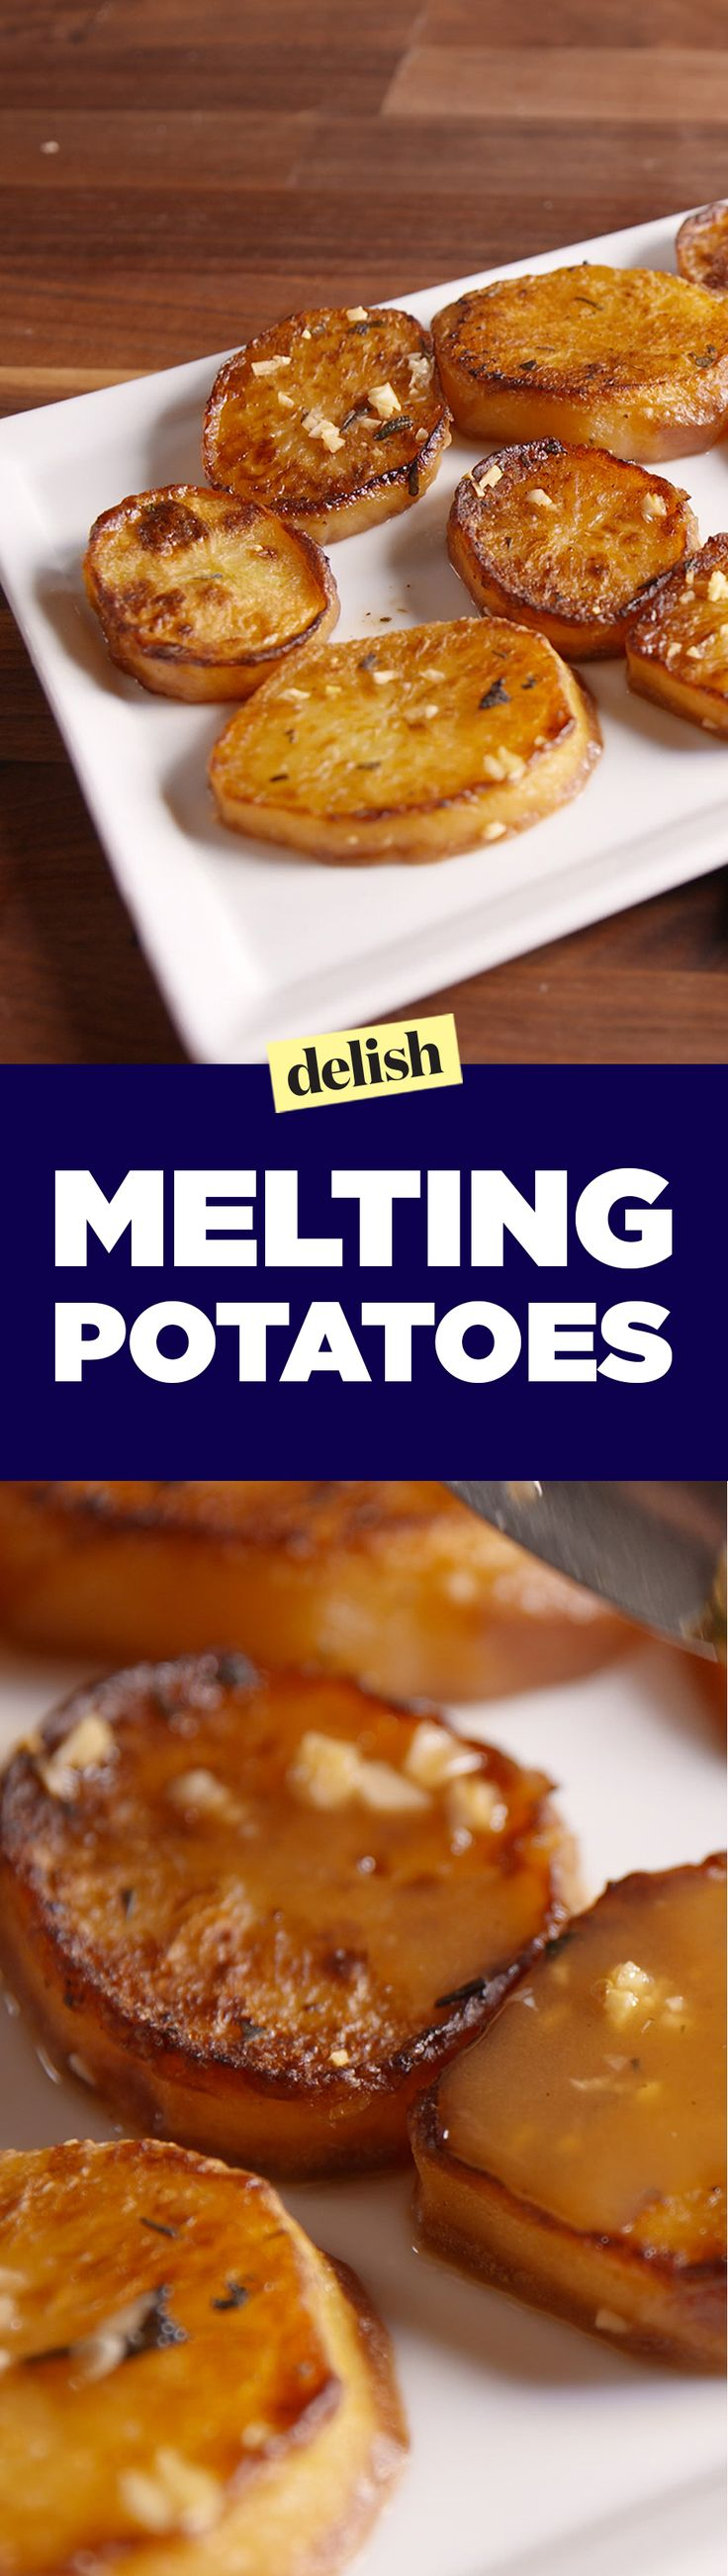 You NEED to know how to make Melting Potatoes. Get the recipe on Delish.com.